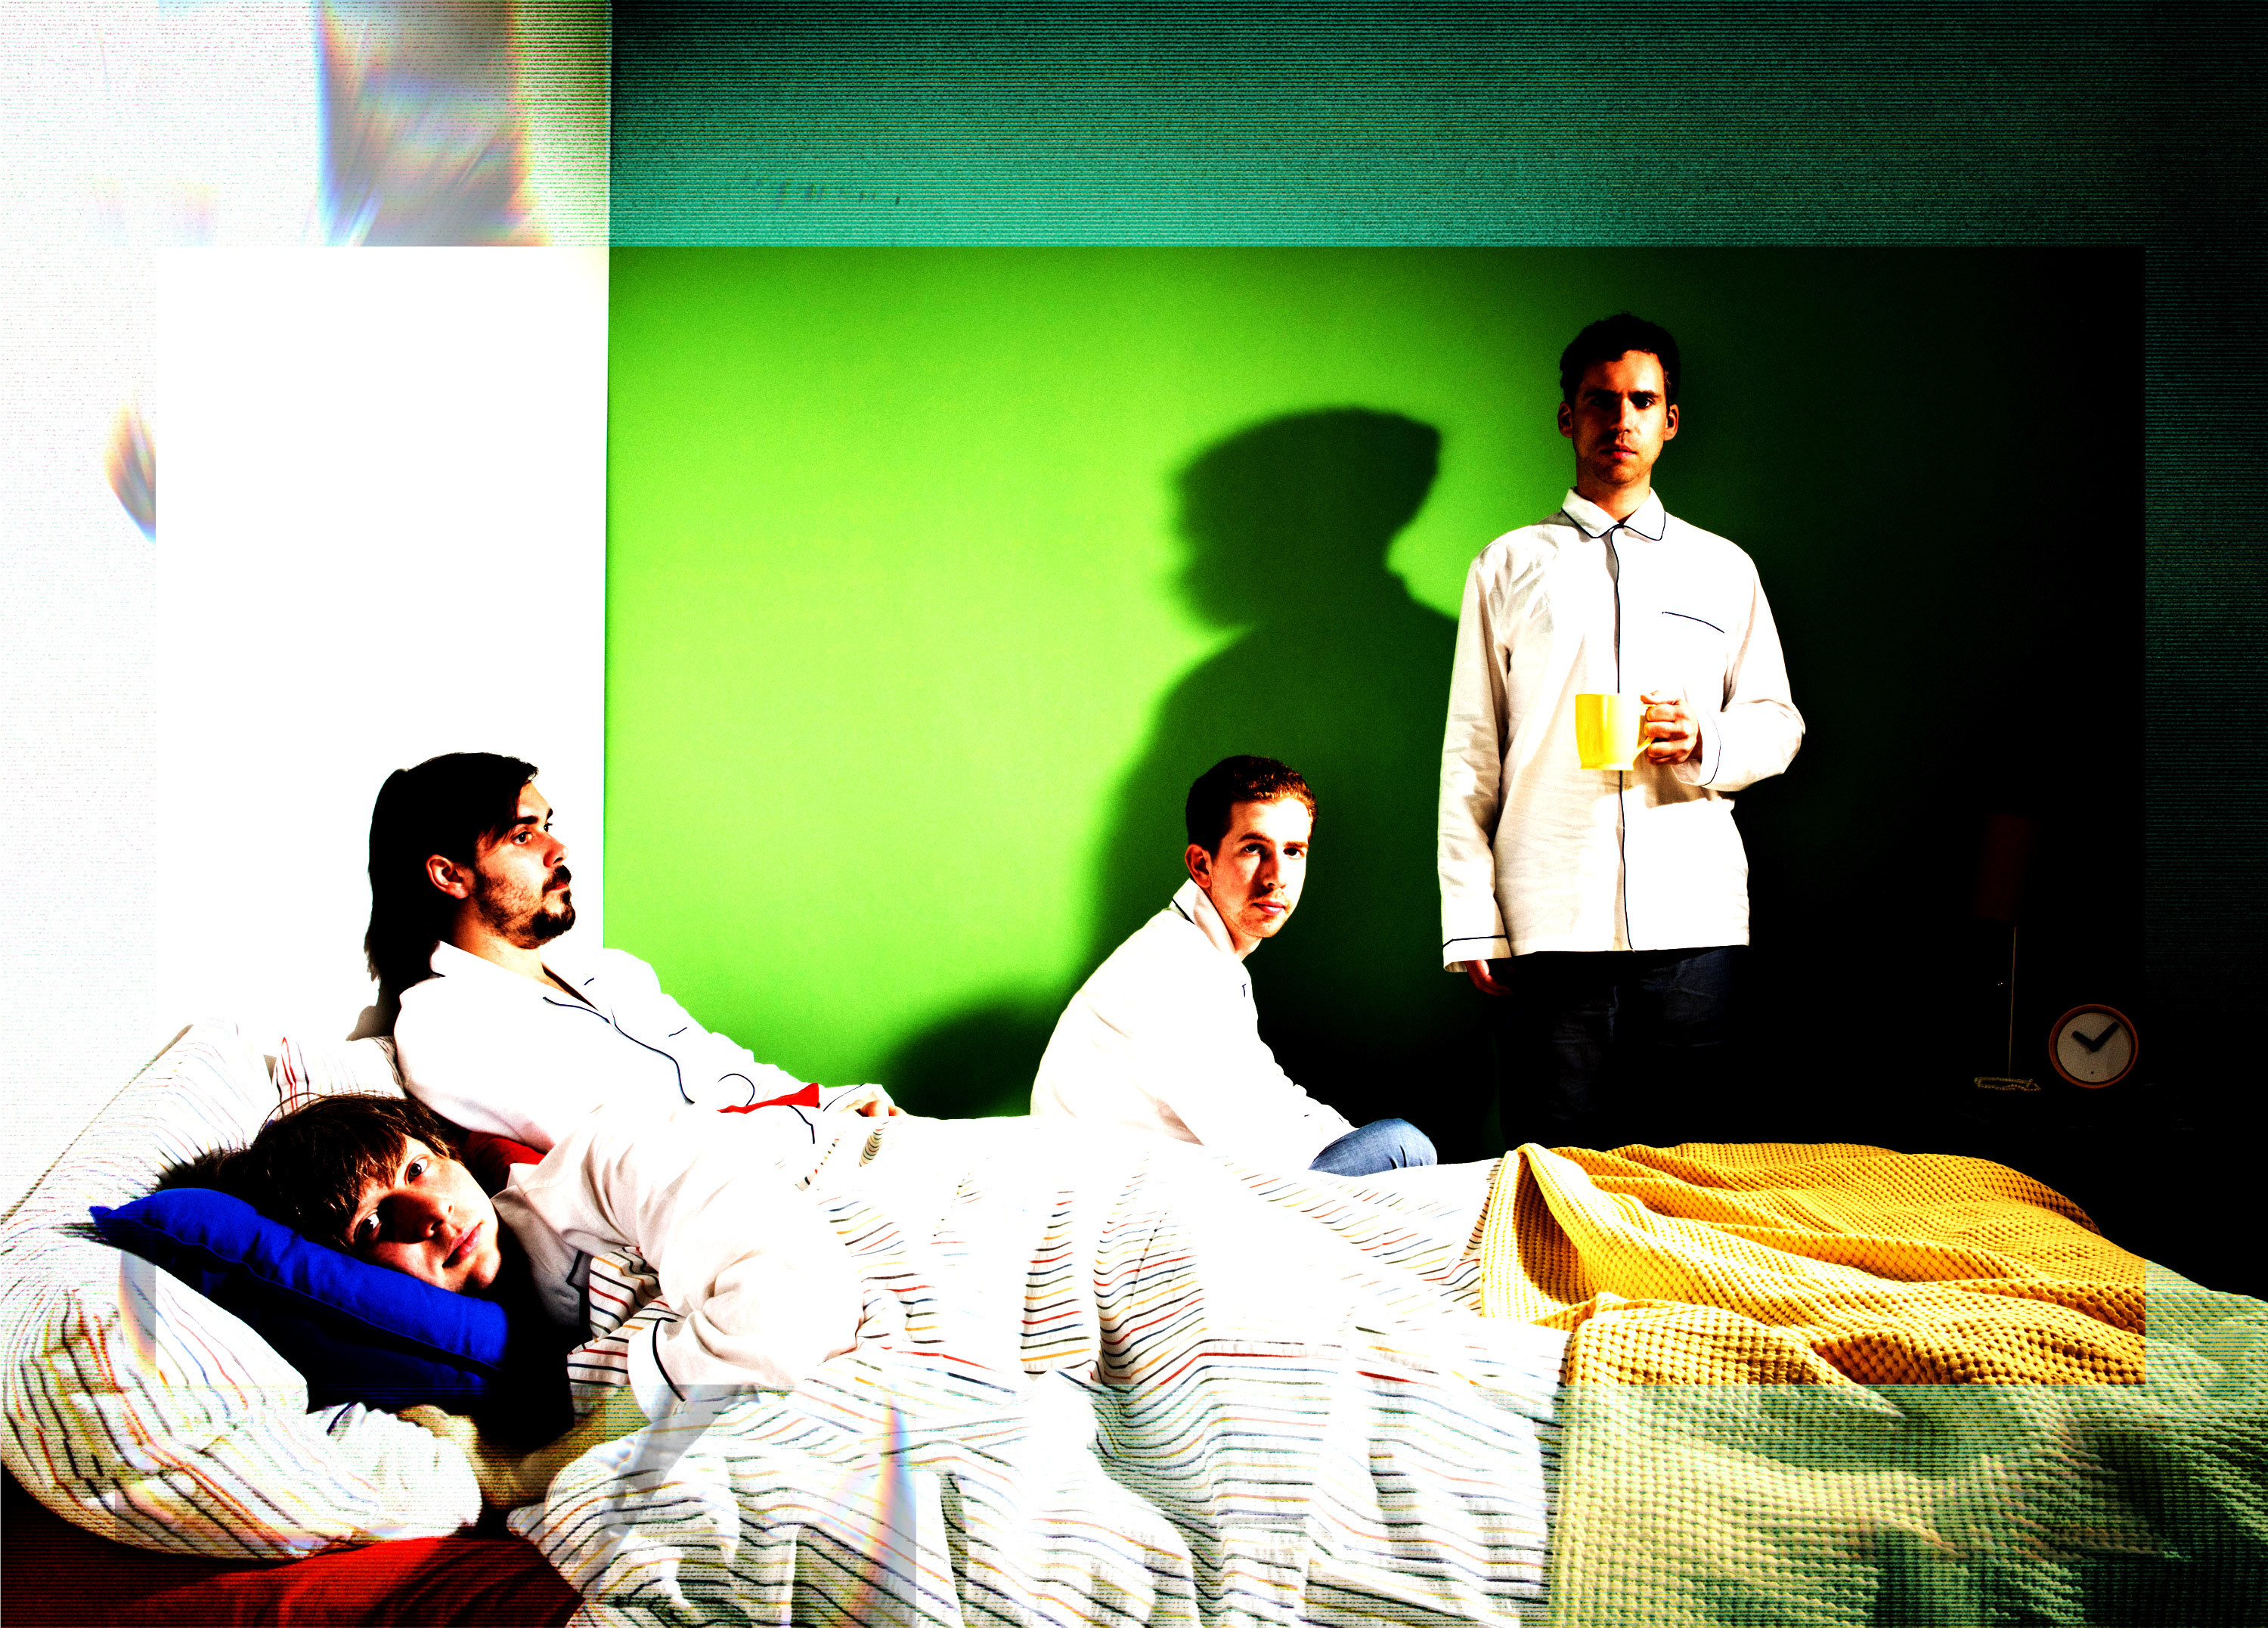 Switched on, turned up: Parquet Courts